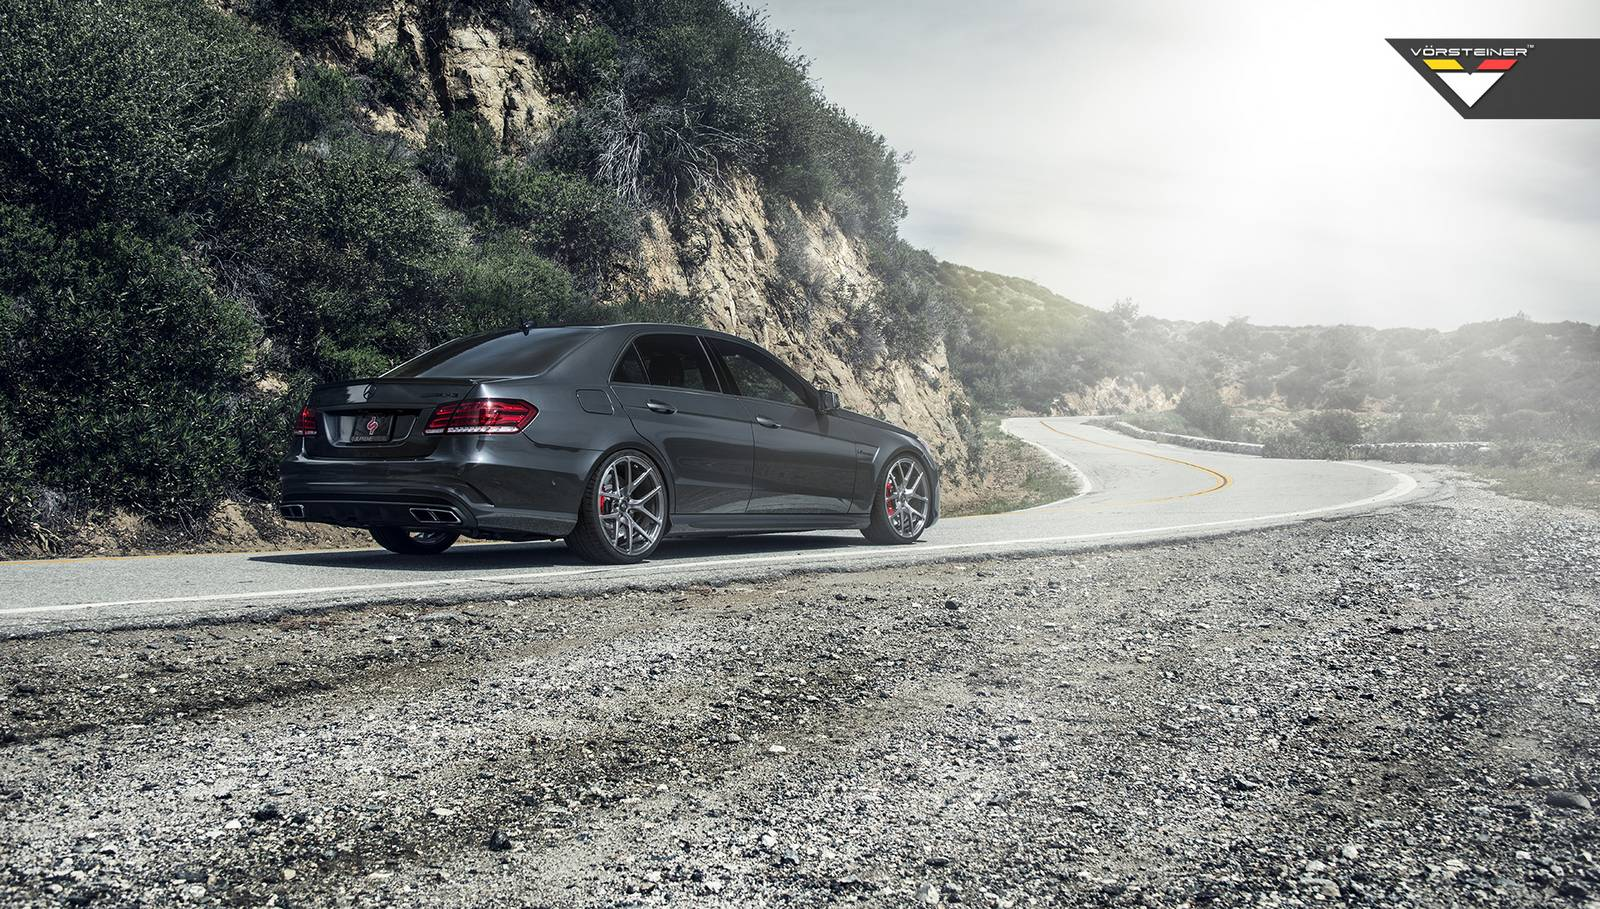 Mercedes benz e 63 amg s model 4matic with vorsteiner for Mercedes benz e63 amg s